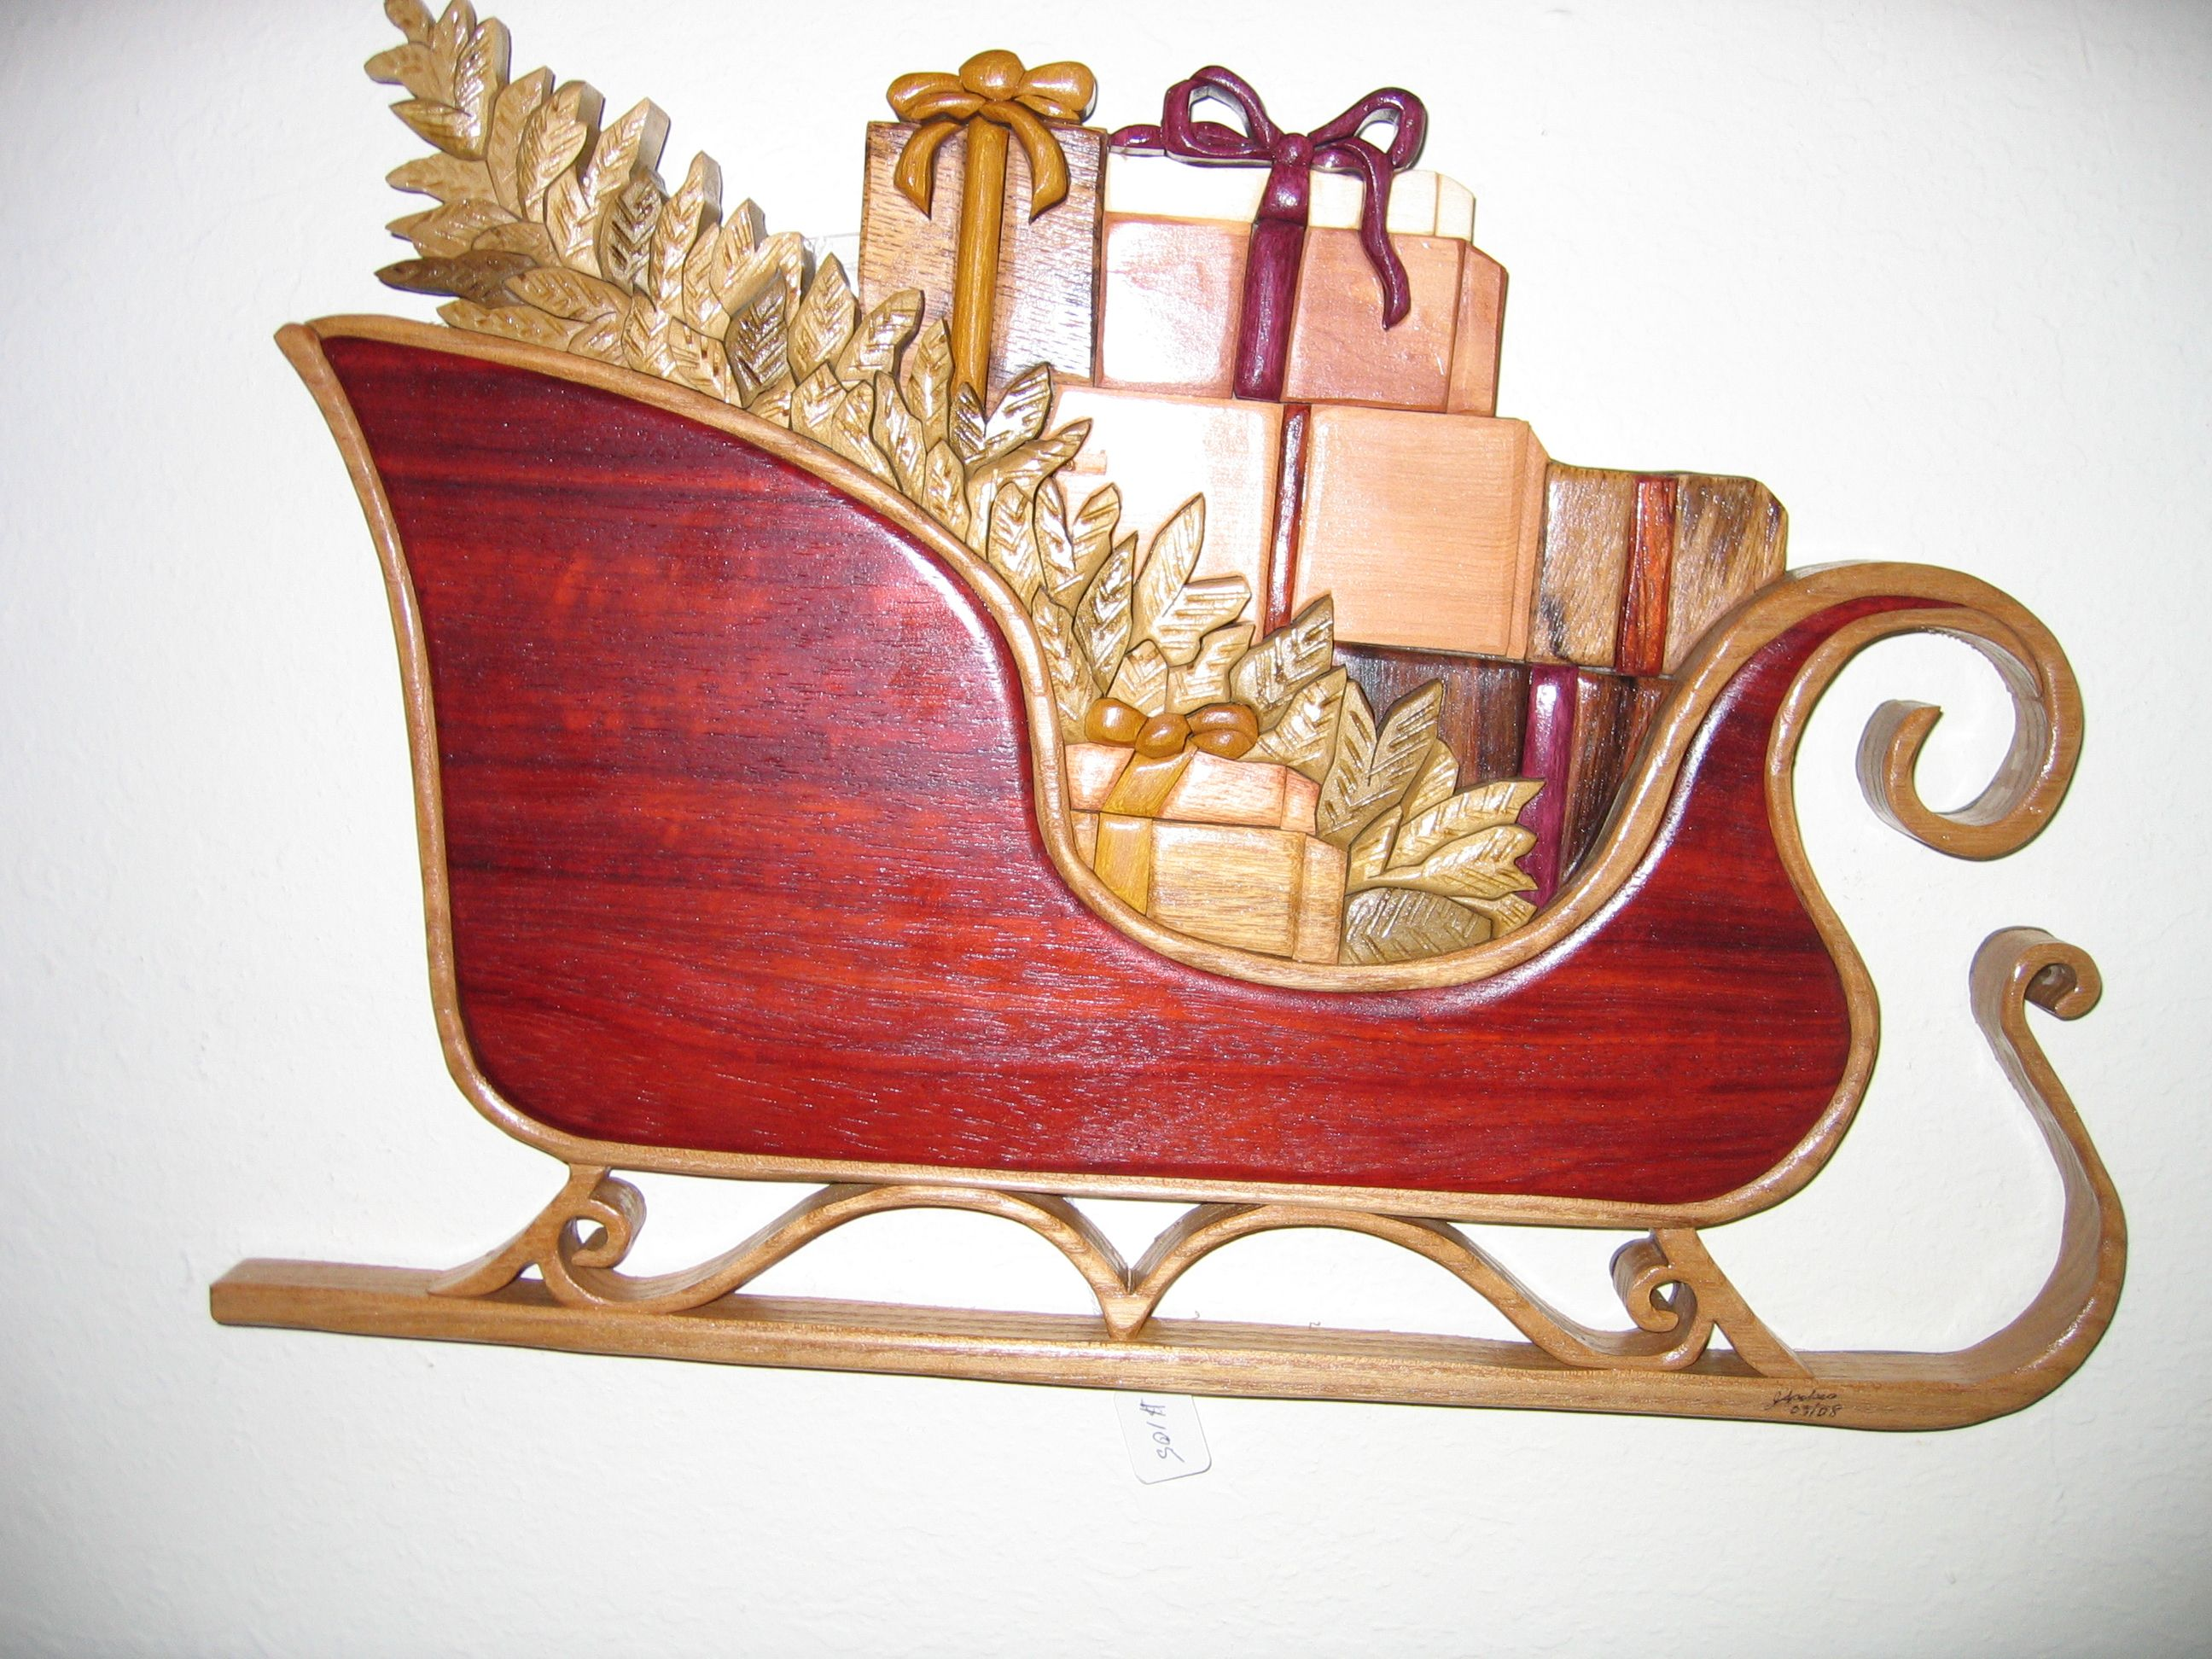 Santa sleigh ornament - Images Of Sleighs Santa Sleigh Decoration